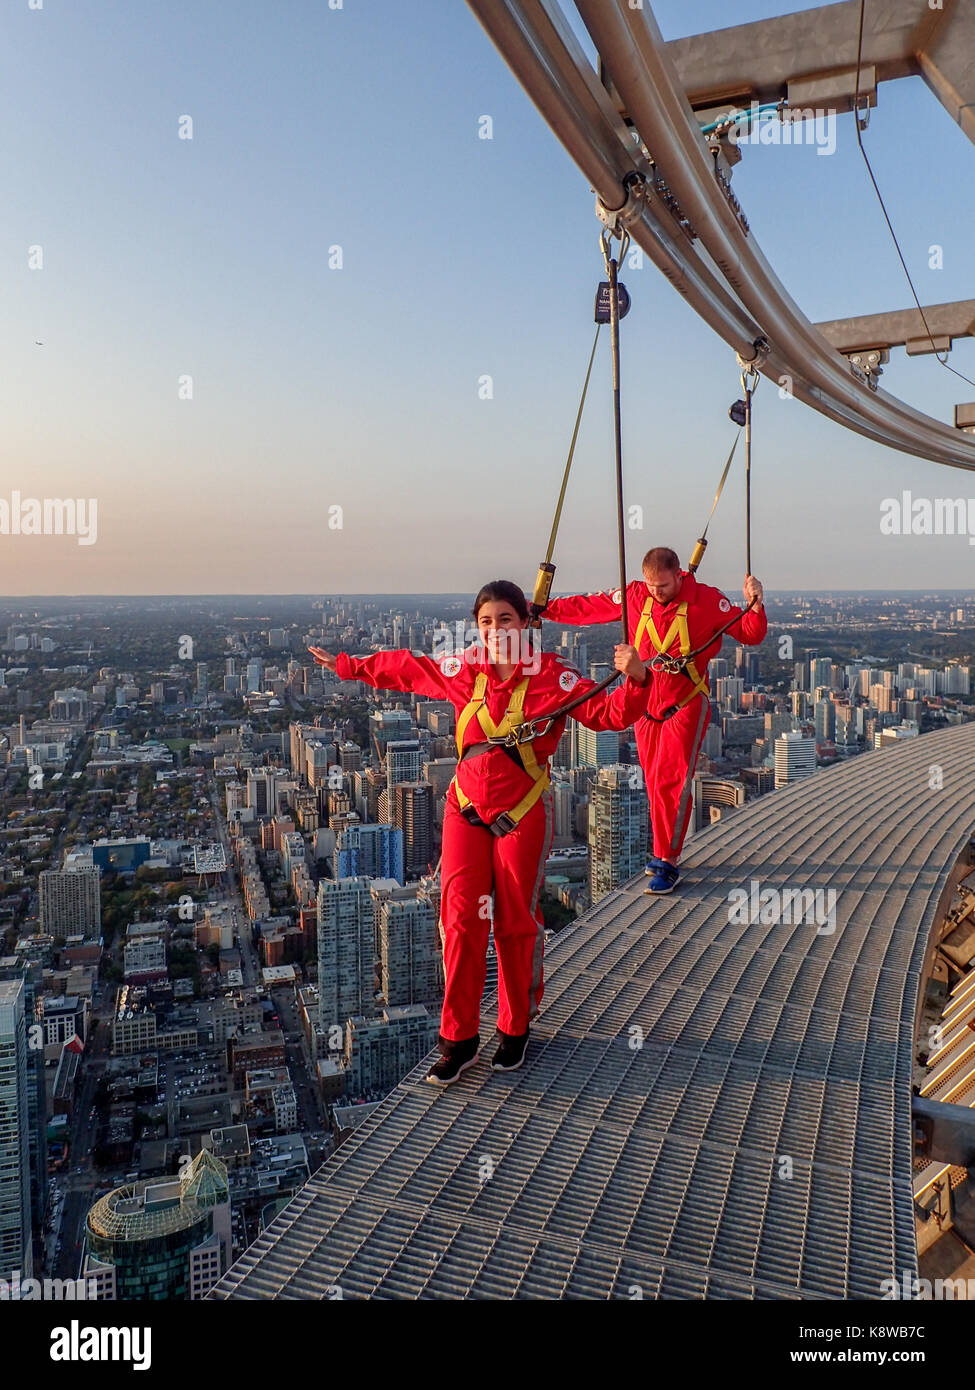 Toronto Canada Real People Doing The Edgewalk At The Cn Tower In Stock Photo Alamy